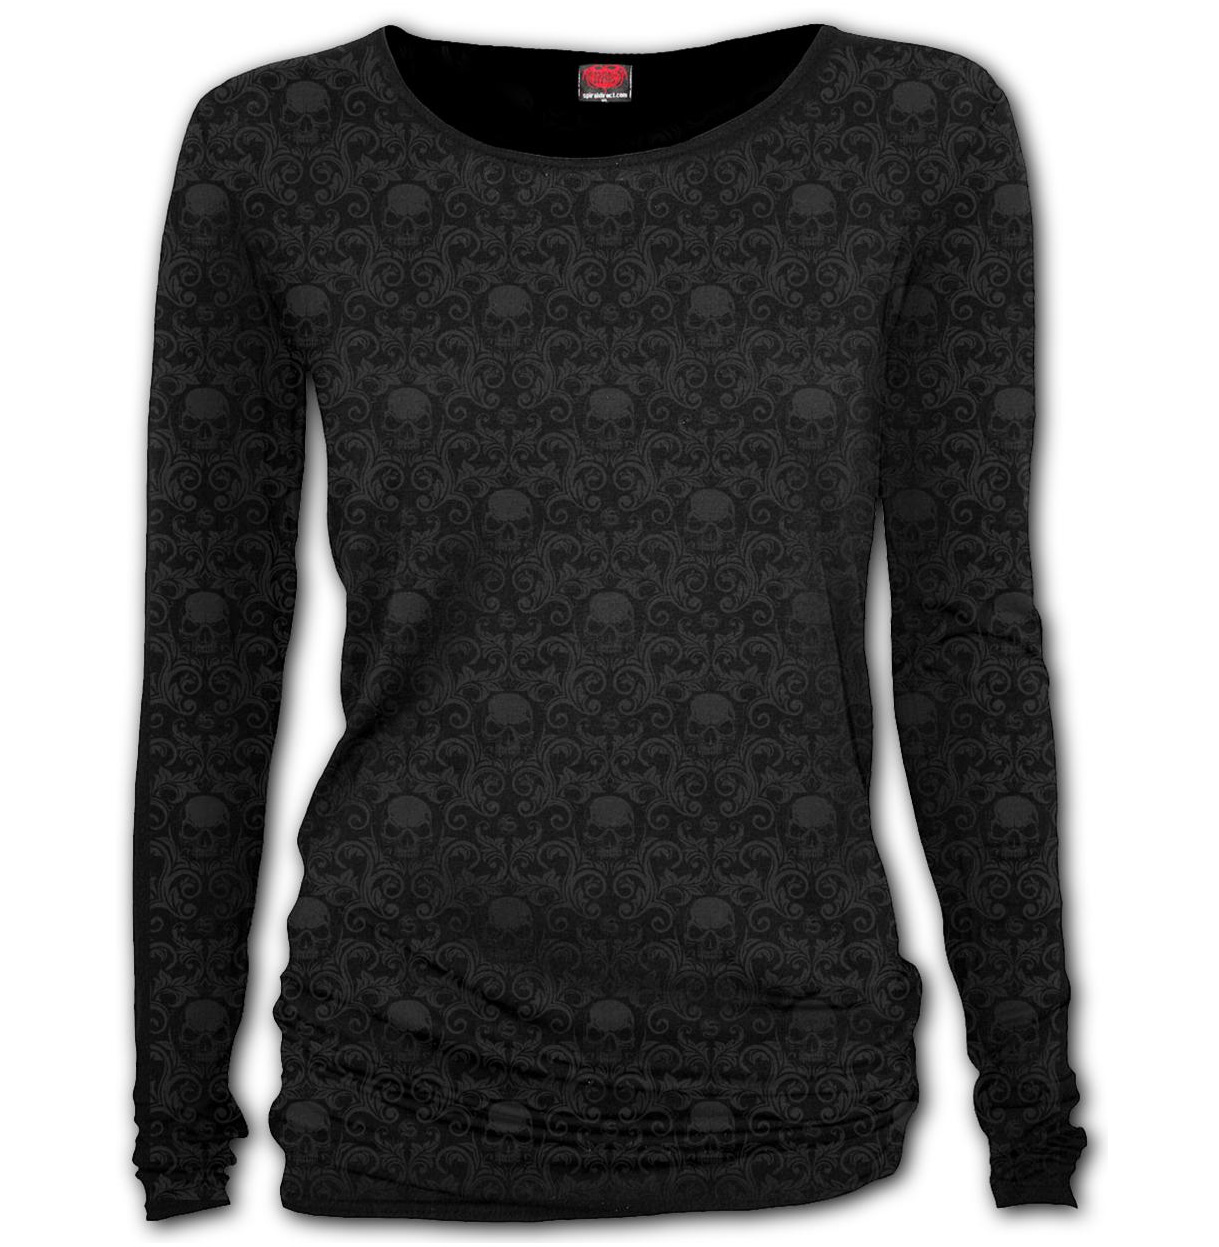 Spiral-Gothic-Elegance-Ladies-Blk-Goth-Scroll-IMPRESSION-L-Sleeve-Top-All-Sizes thumbnail 5